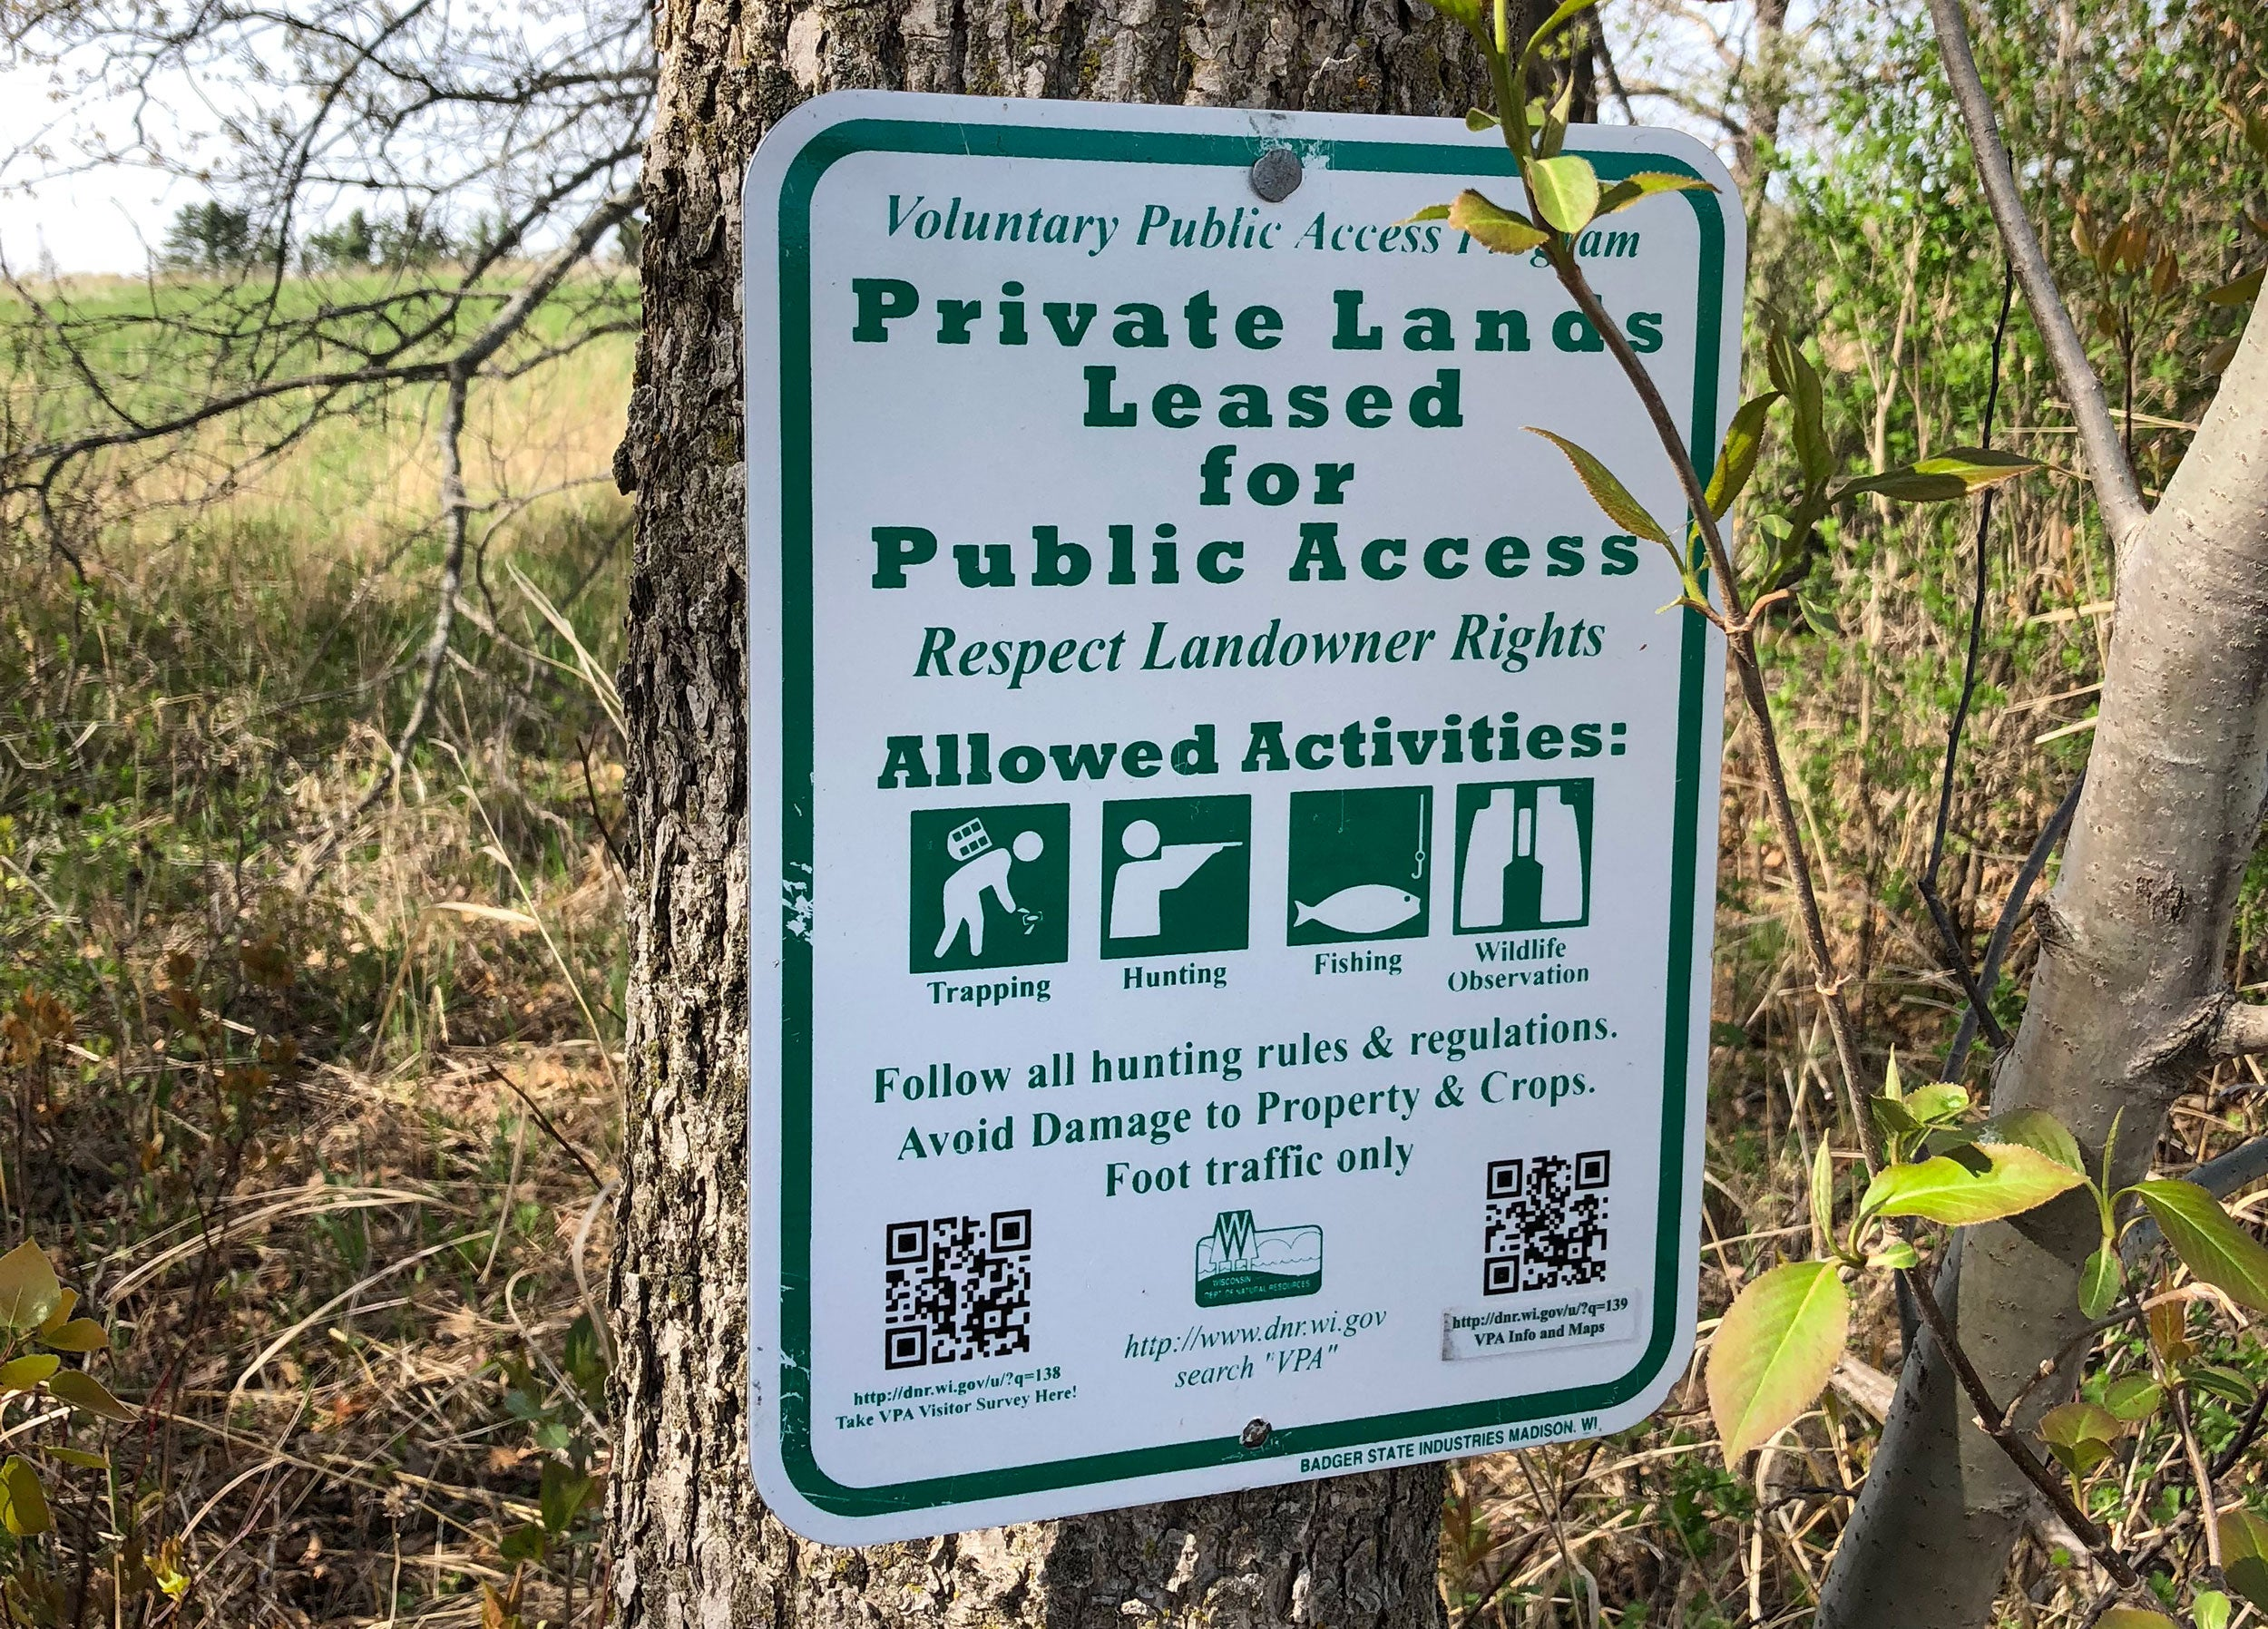 Voluntary public access allows public hunting on private land.